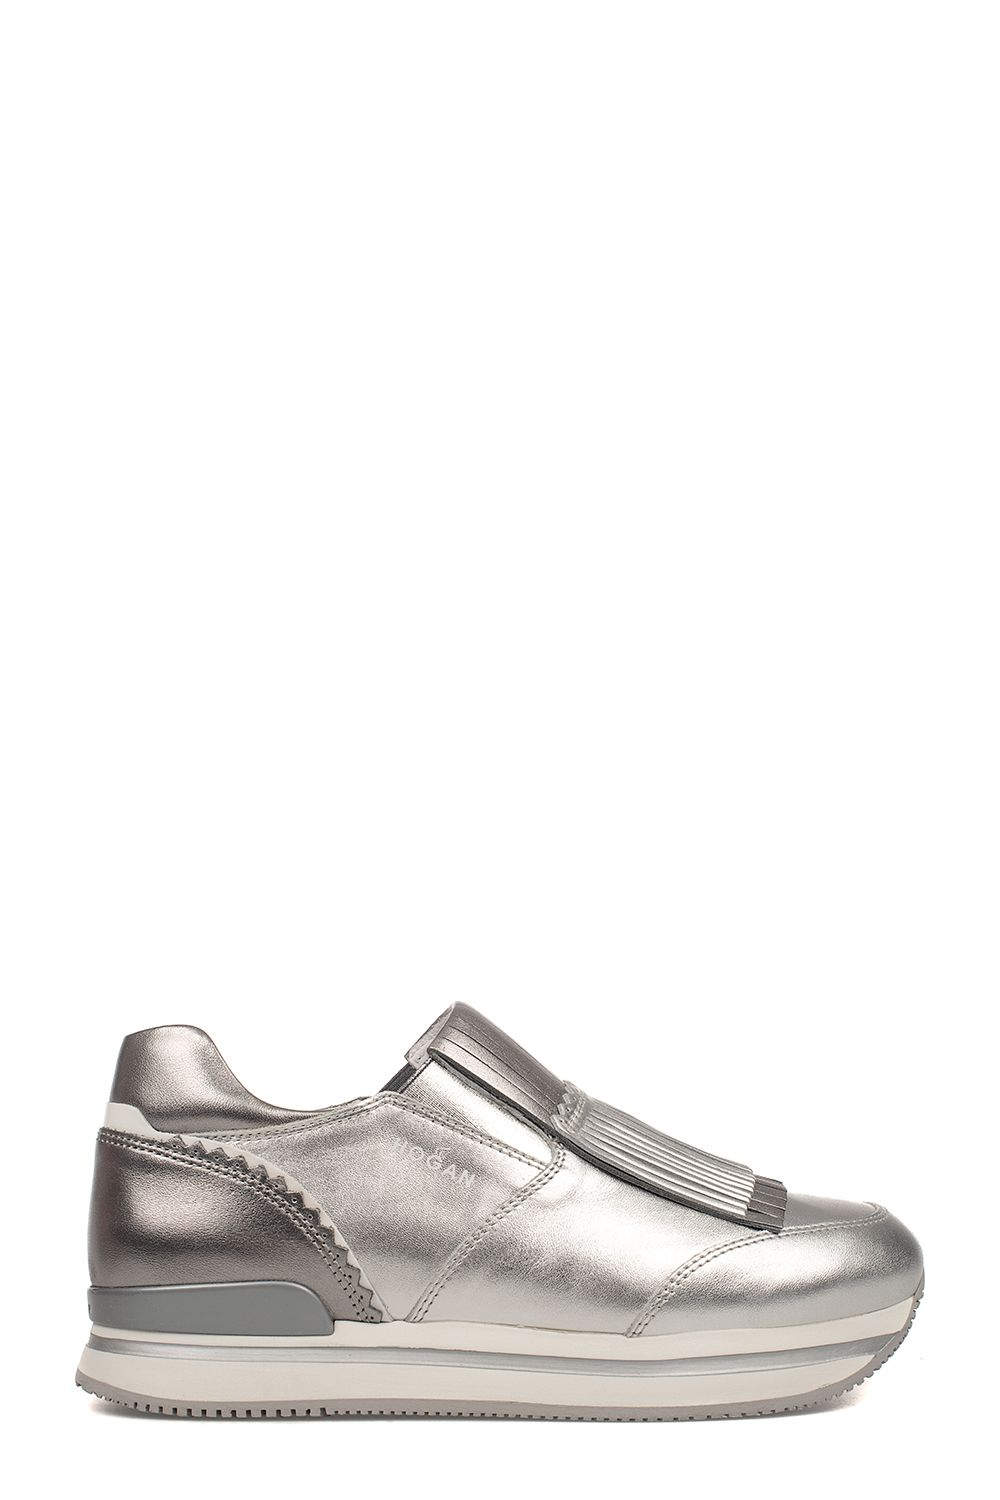 Silver H222 Slip On Leather Sneakers